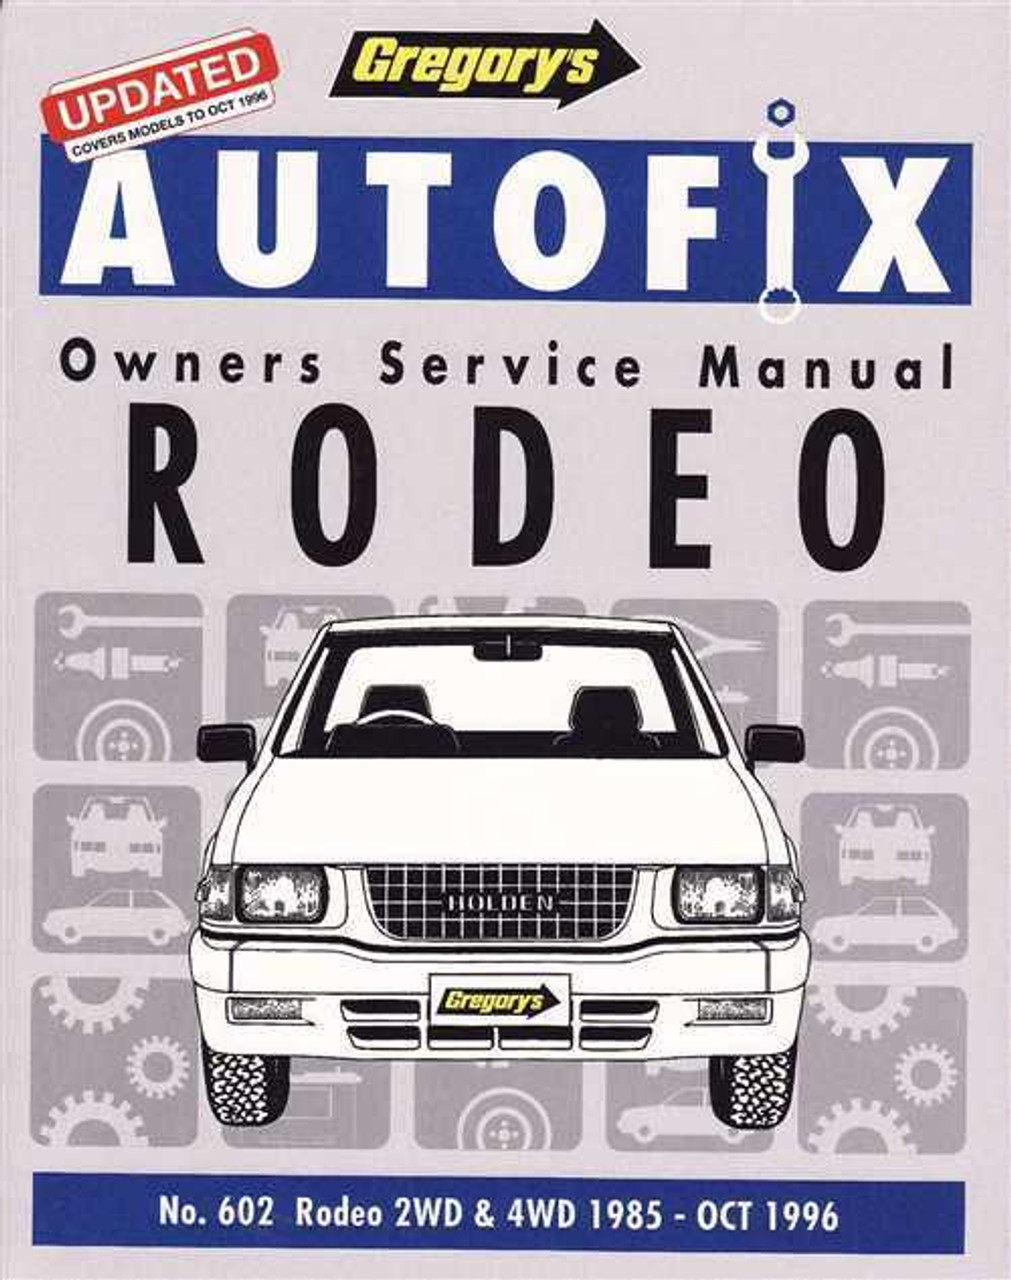 holden rodeo 2wd 4wd petrol 1985 1996 workshop manual rh automotobookshop com au 1997 Holden Rodeo 1990 Holden Rodeo